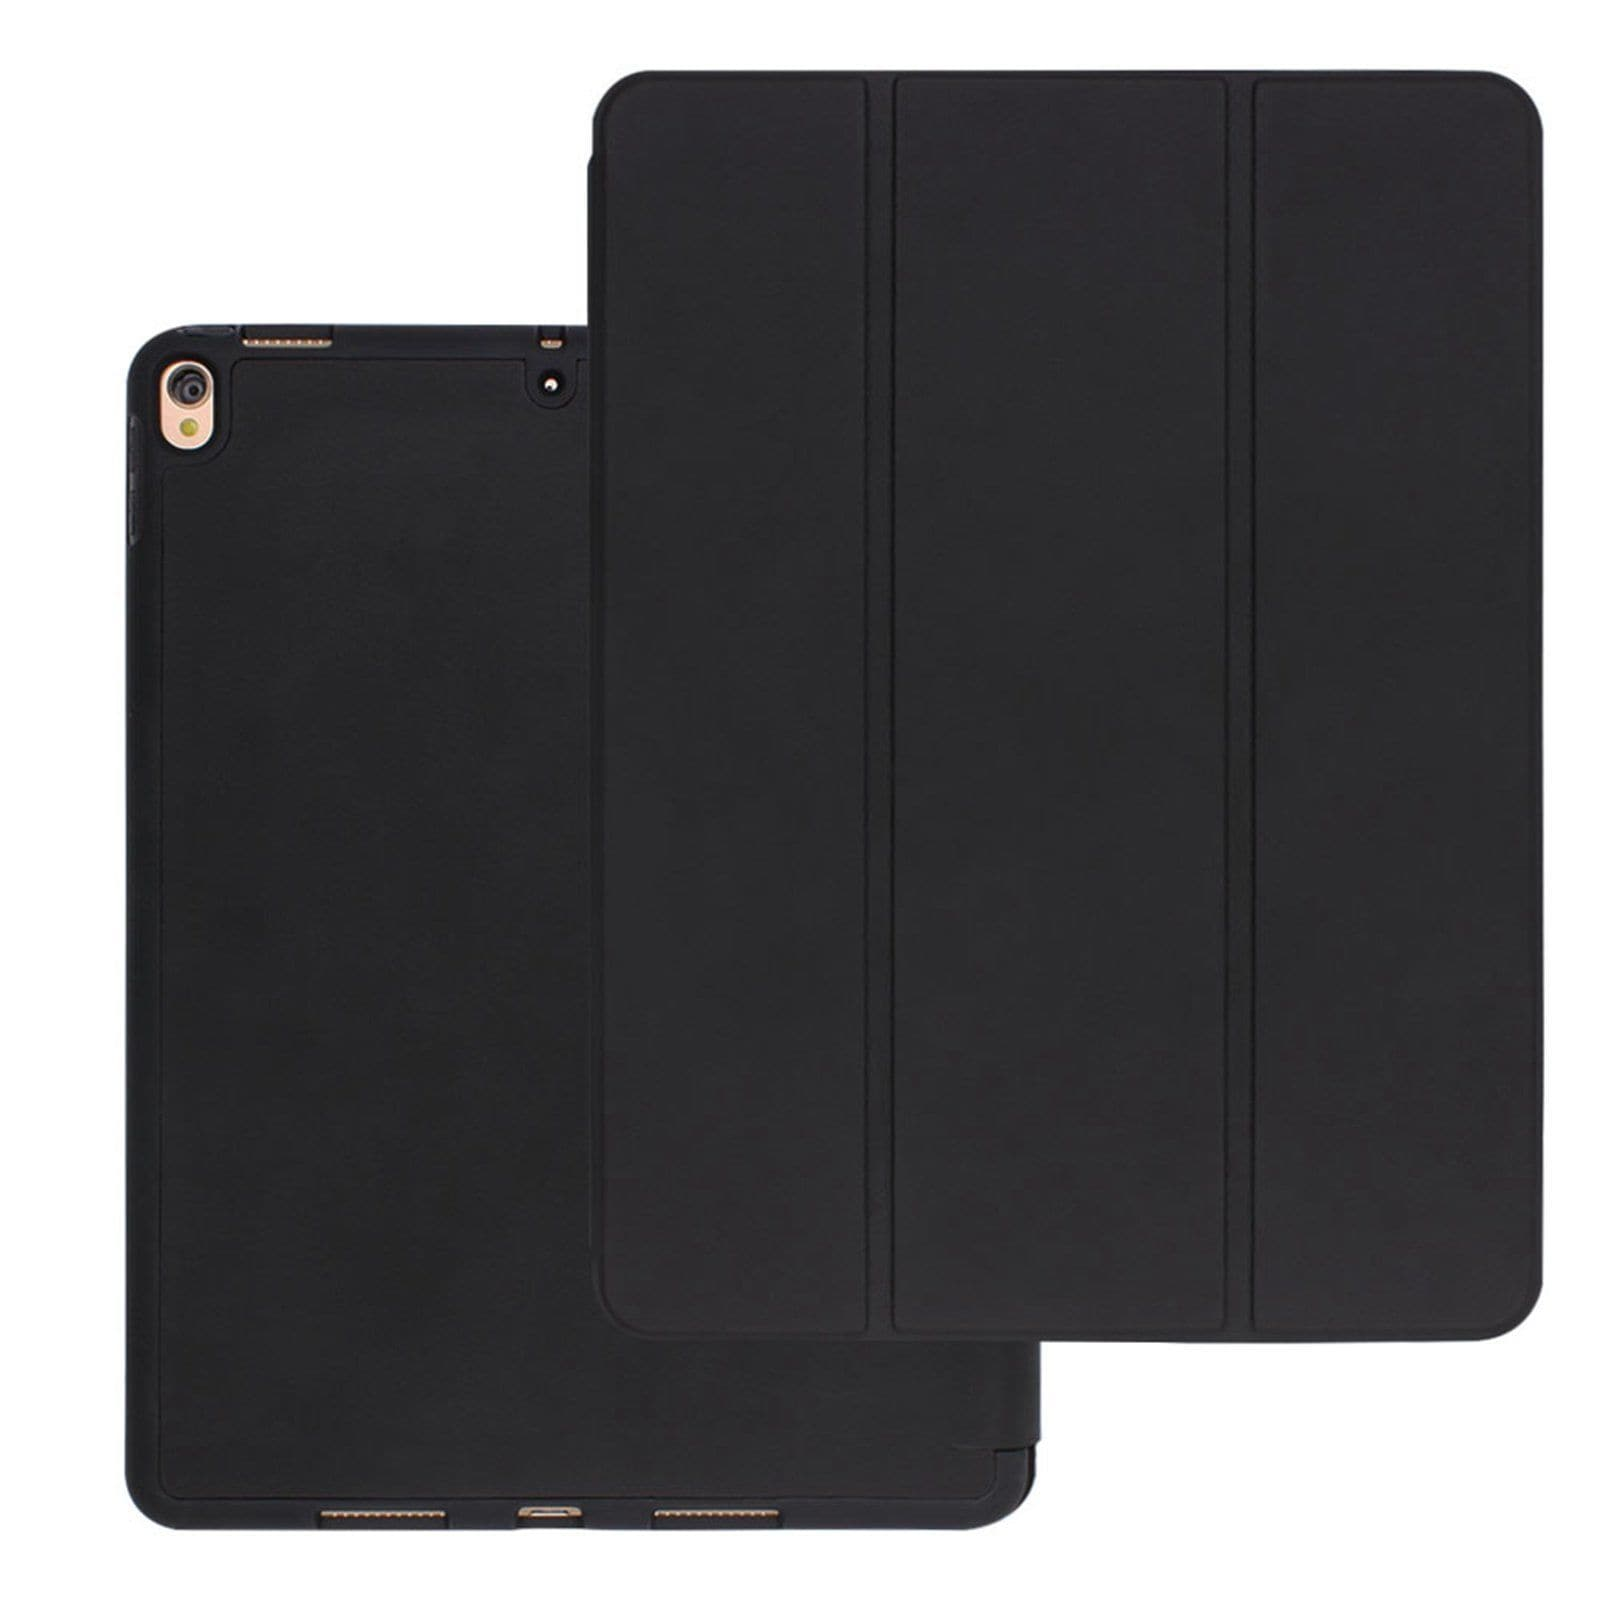 "Flip Case with Pencil Holder for iPad Pro 12.9"" (2017) black"